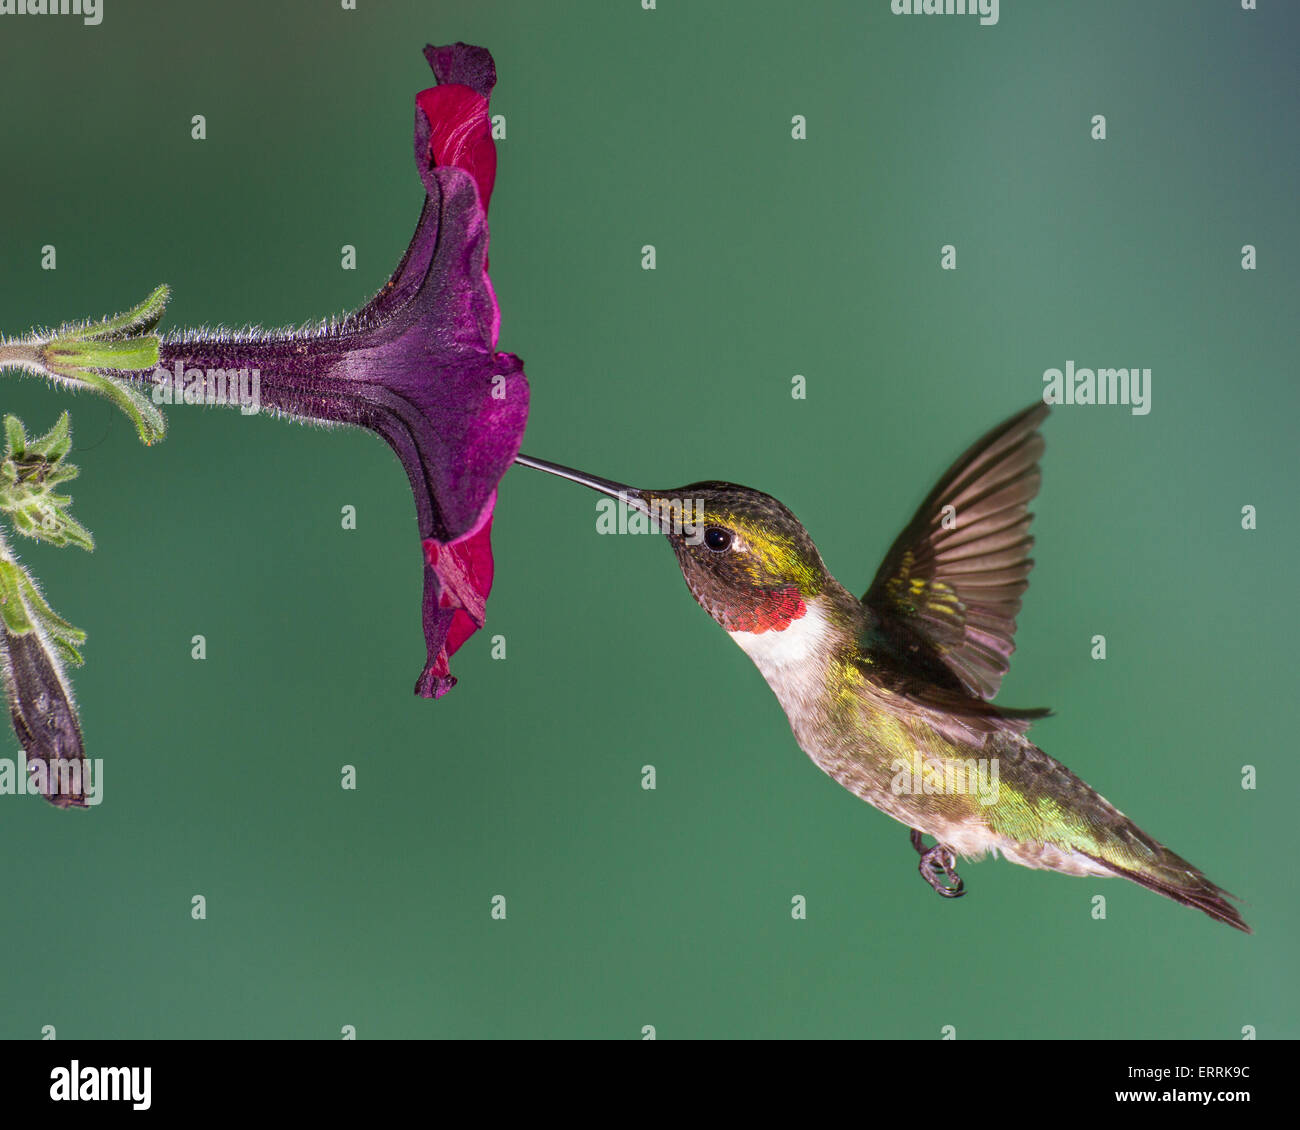 A ruby-throated hummingbird gathering nectar from a petunia. - Stock Image